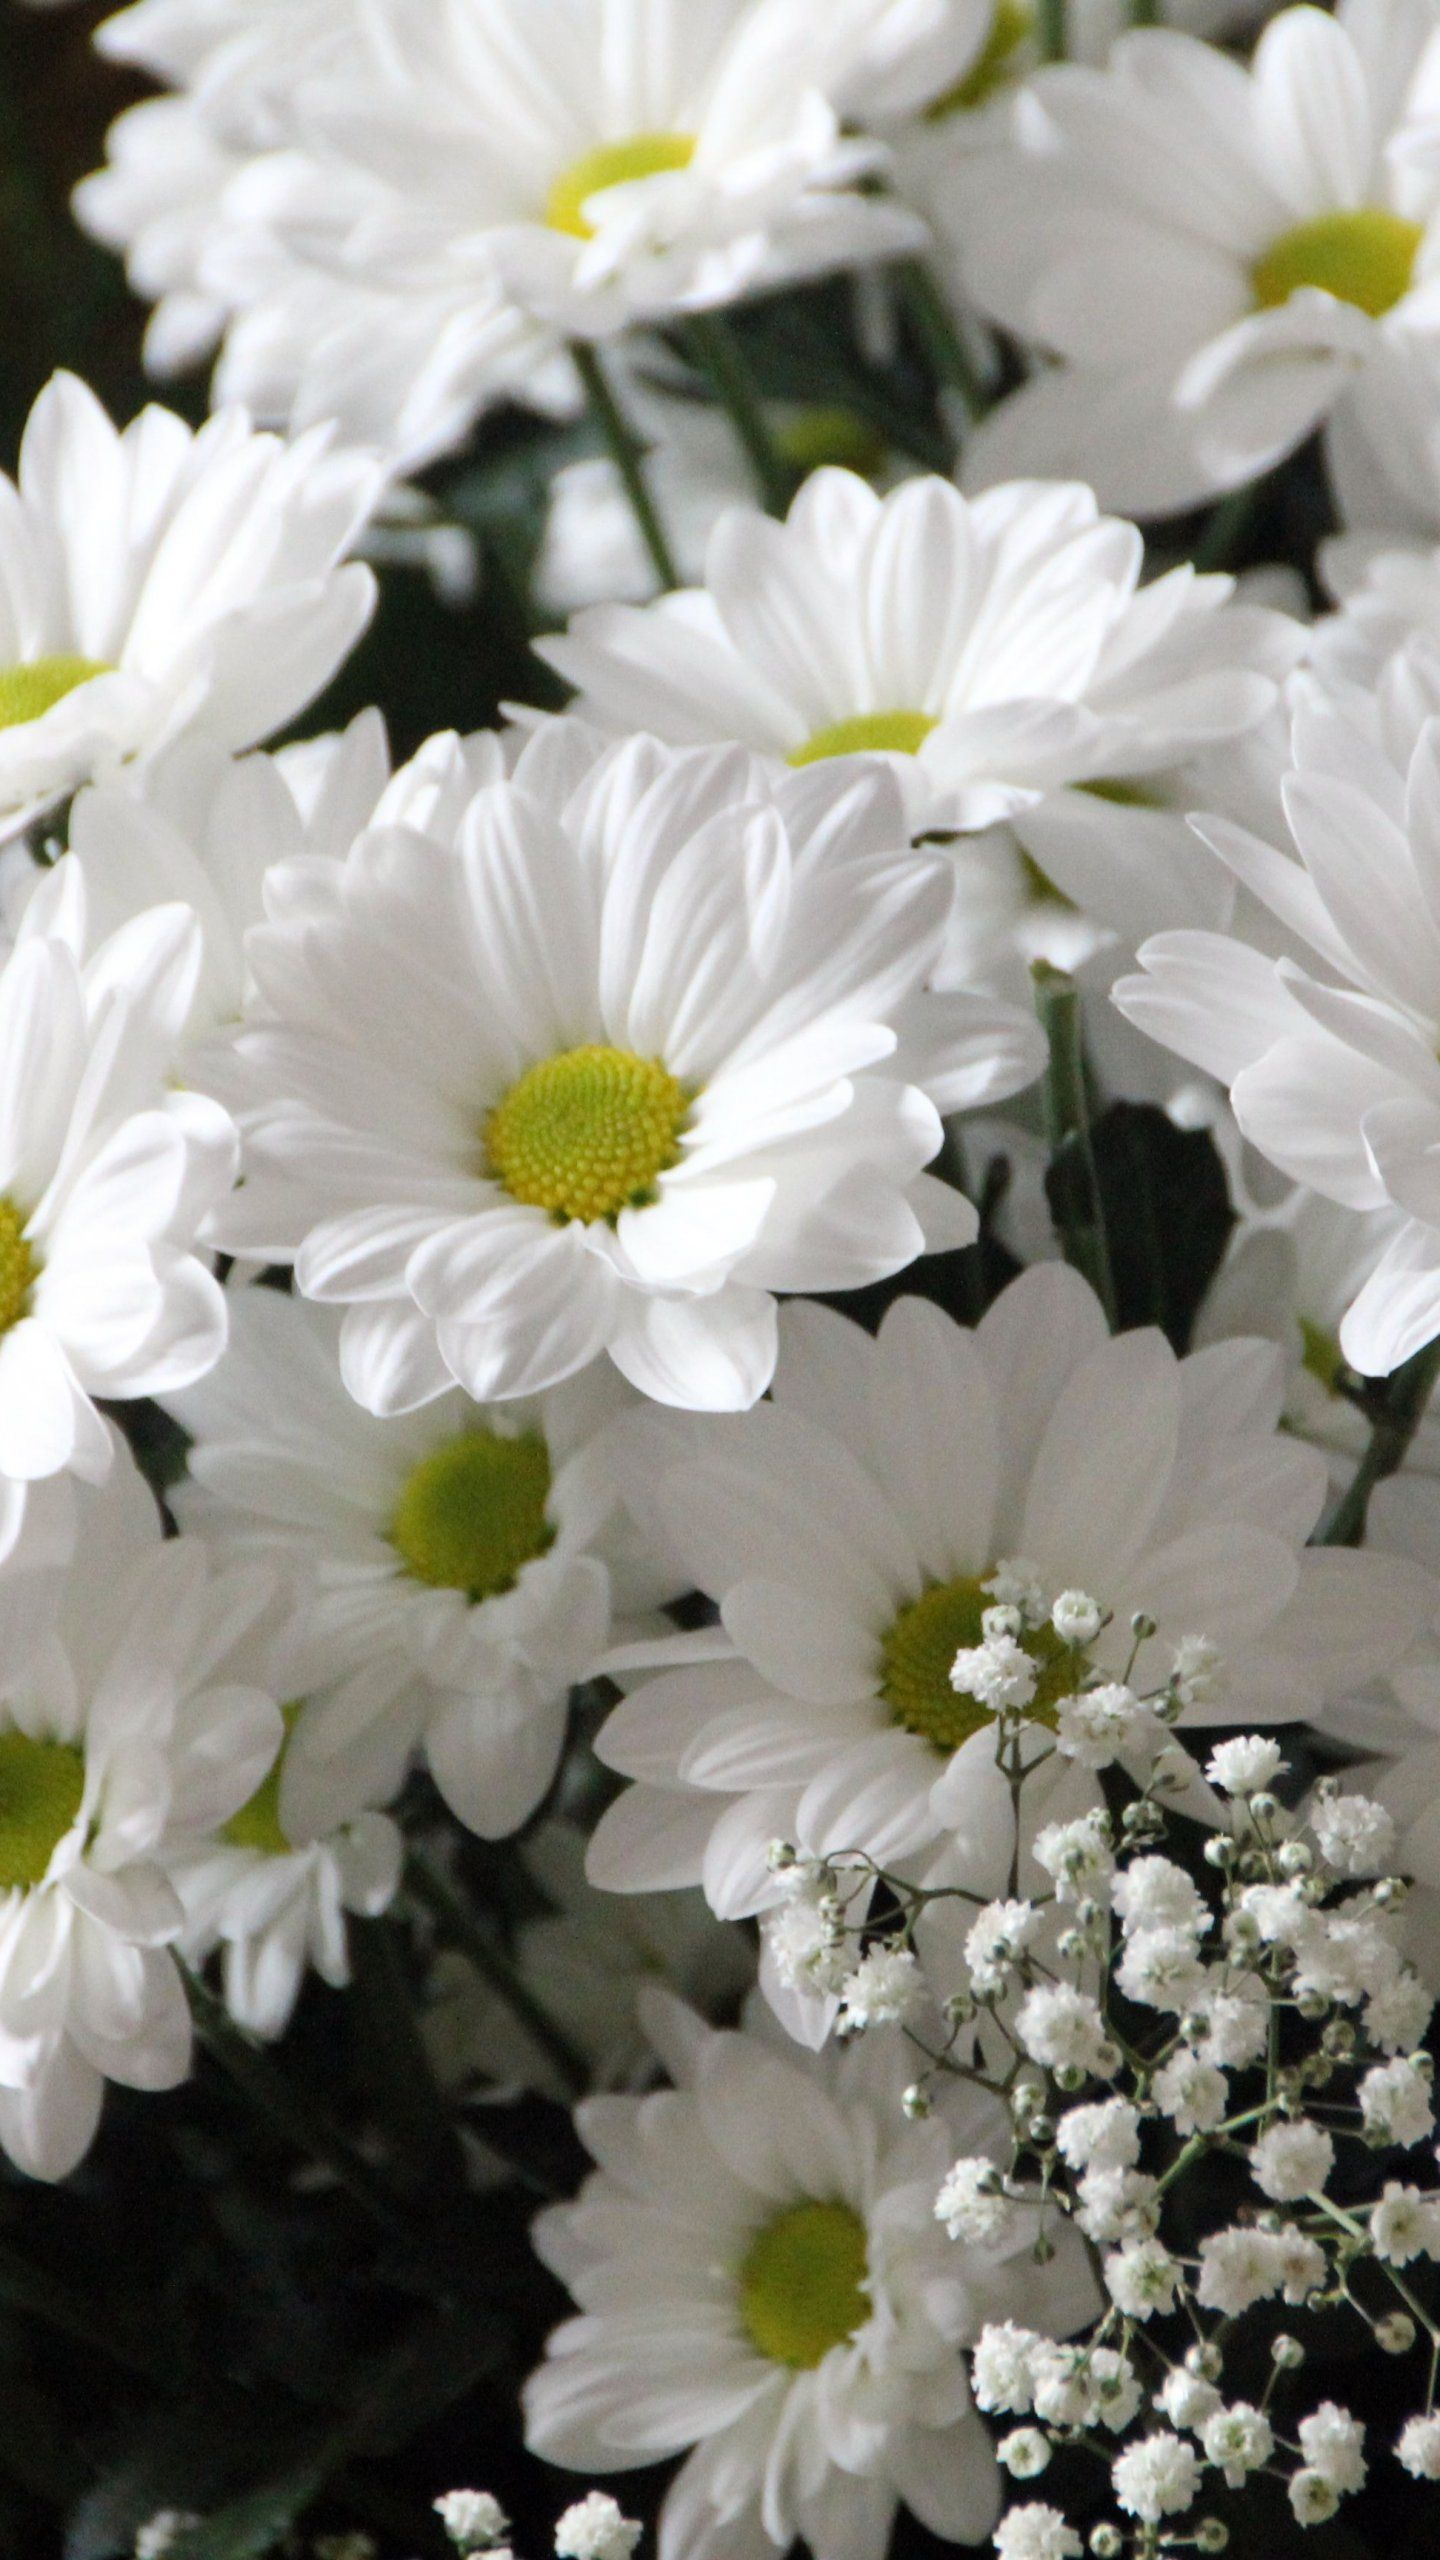 White Daisies Wallpaper iPhone, Android & Desktop